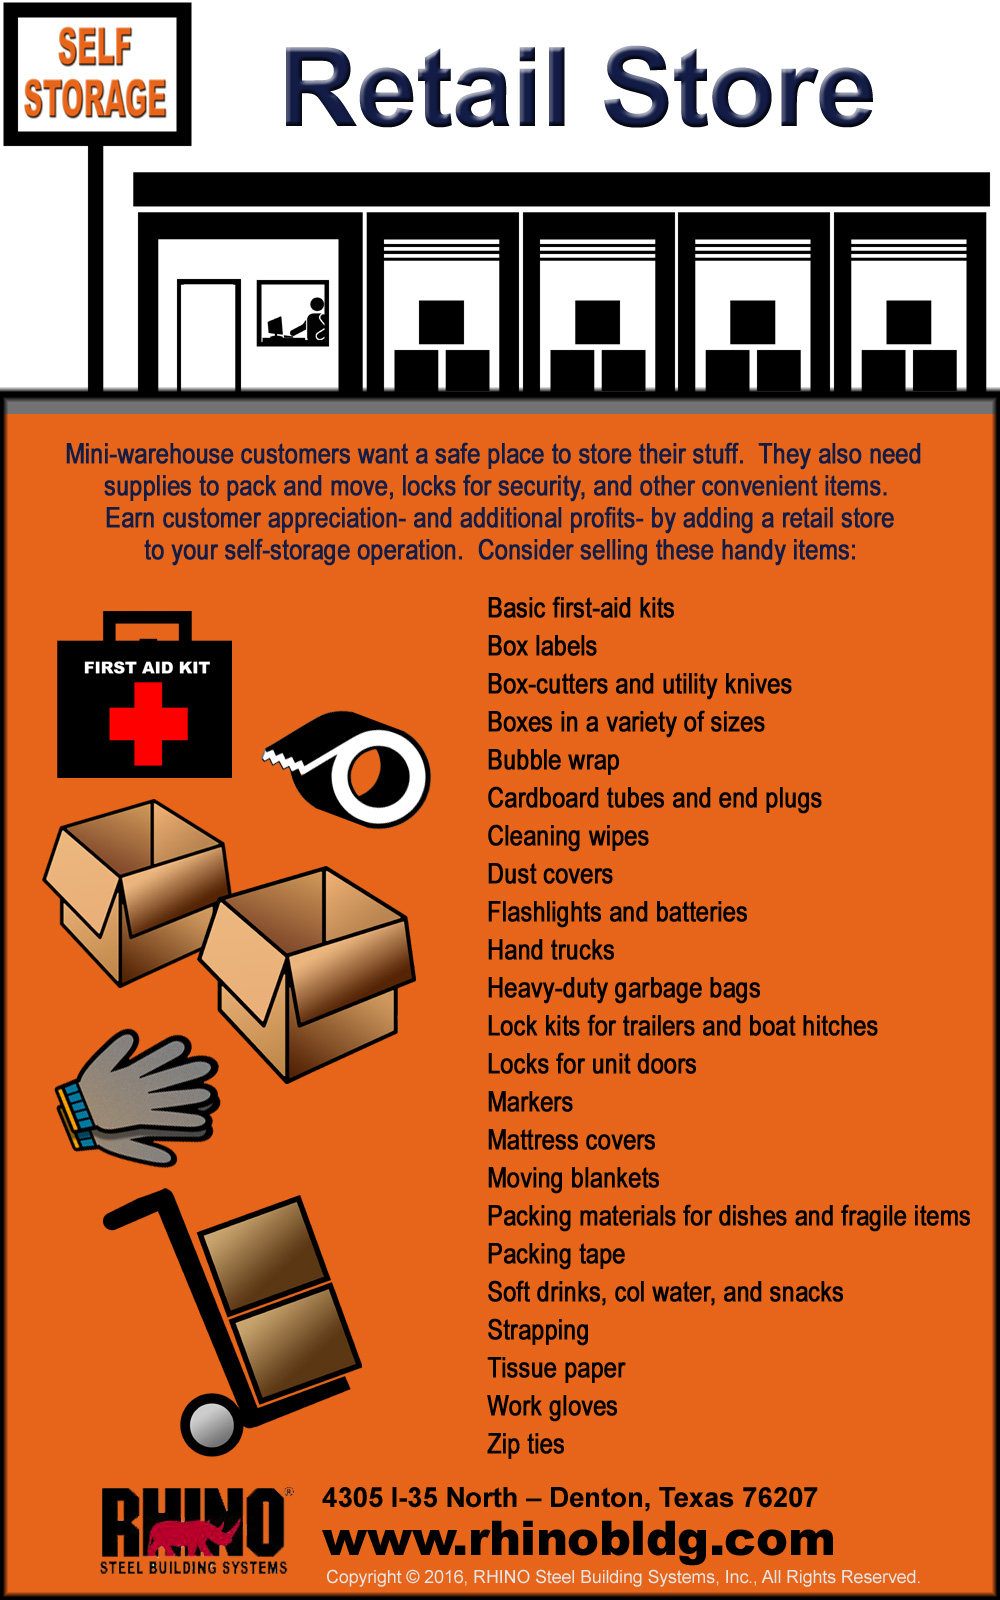 Infographic describes the possibilities of adding a supply store to a self-storage business.